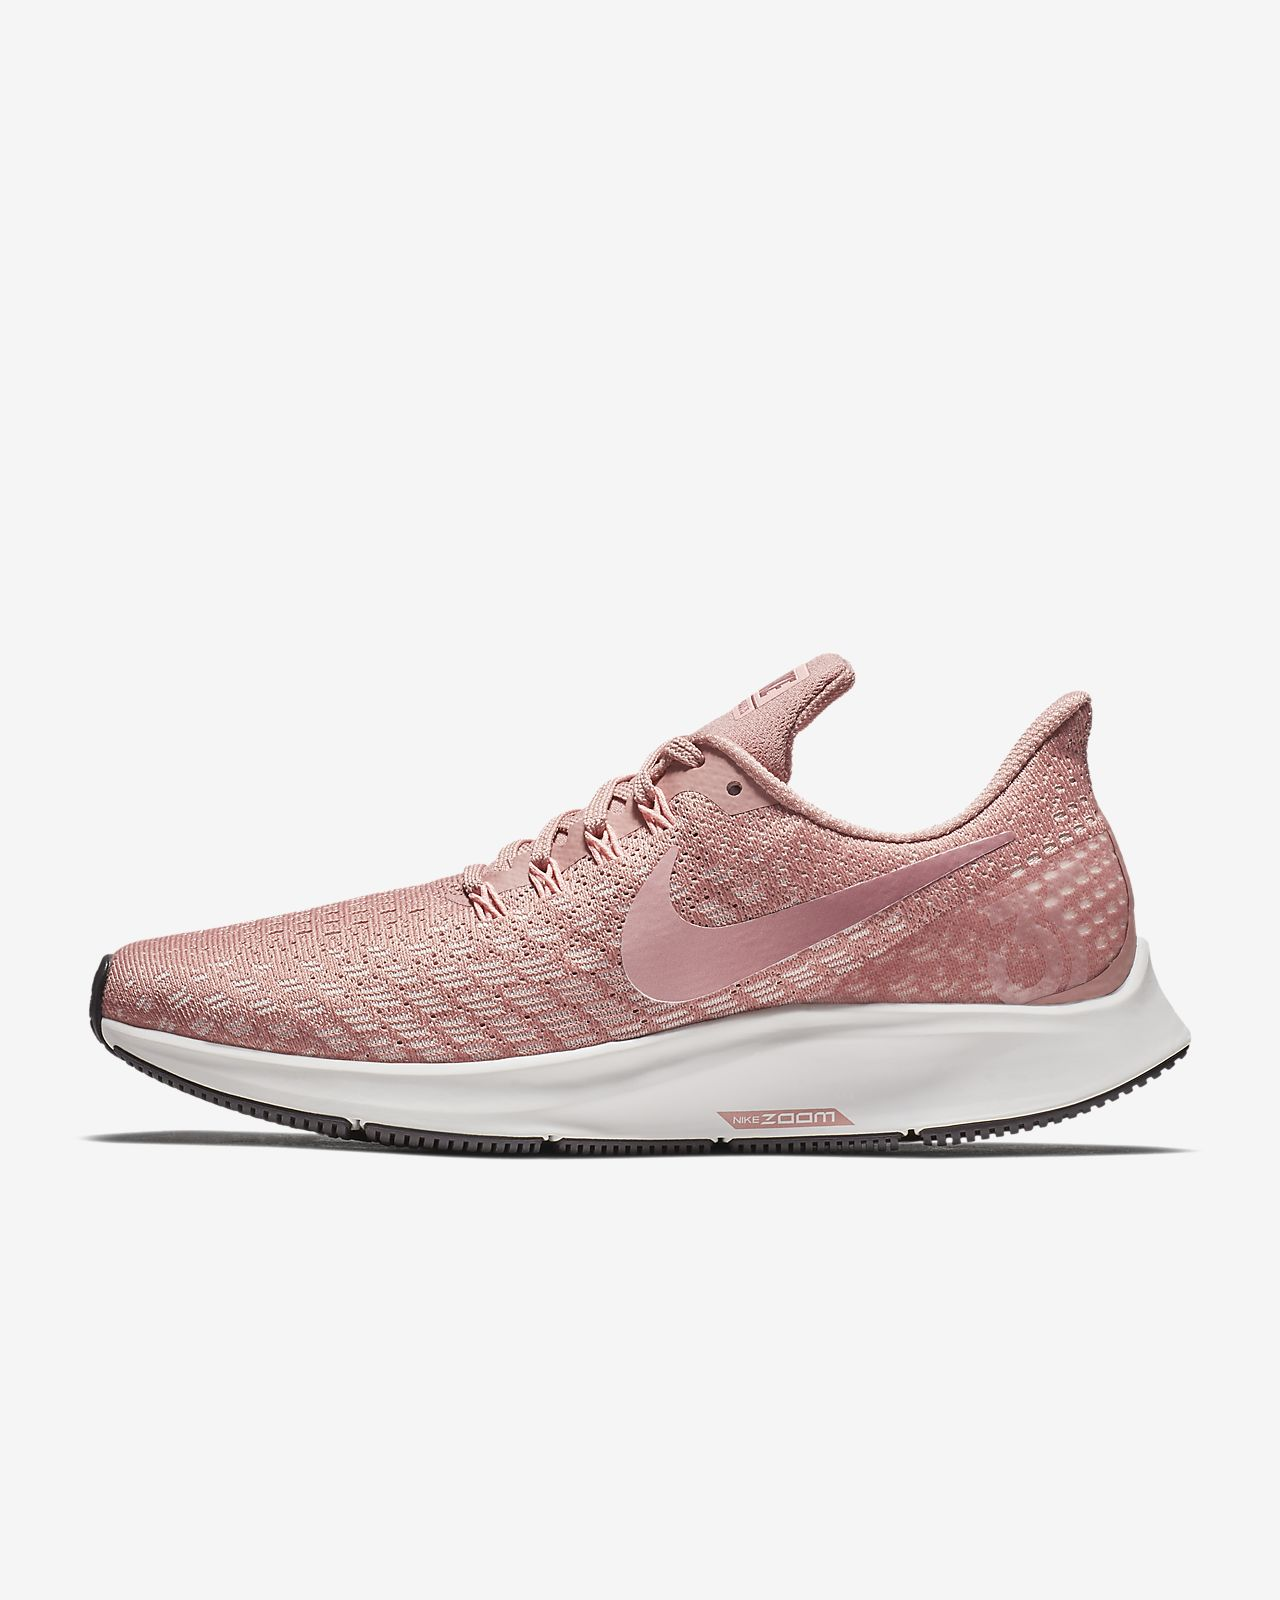 db7643dda Nike Air Zoom Pegasus 35 Women's Running Shoe. Nike.com ID